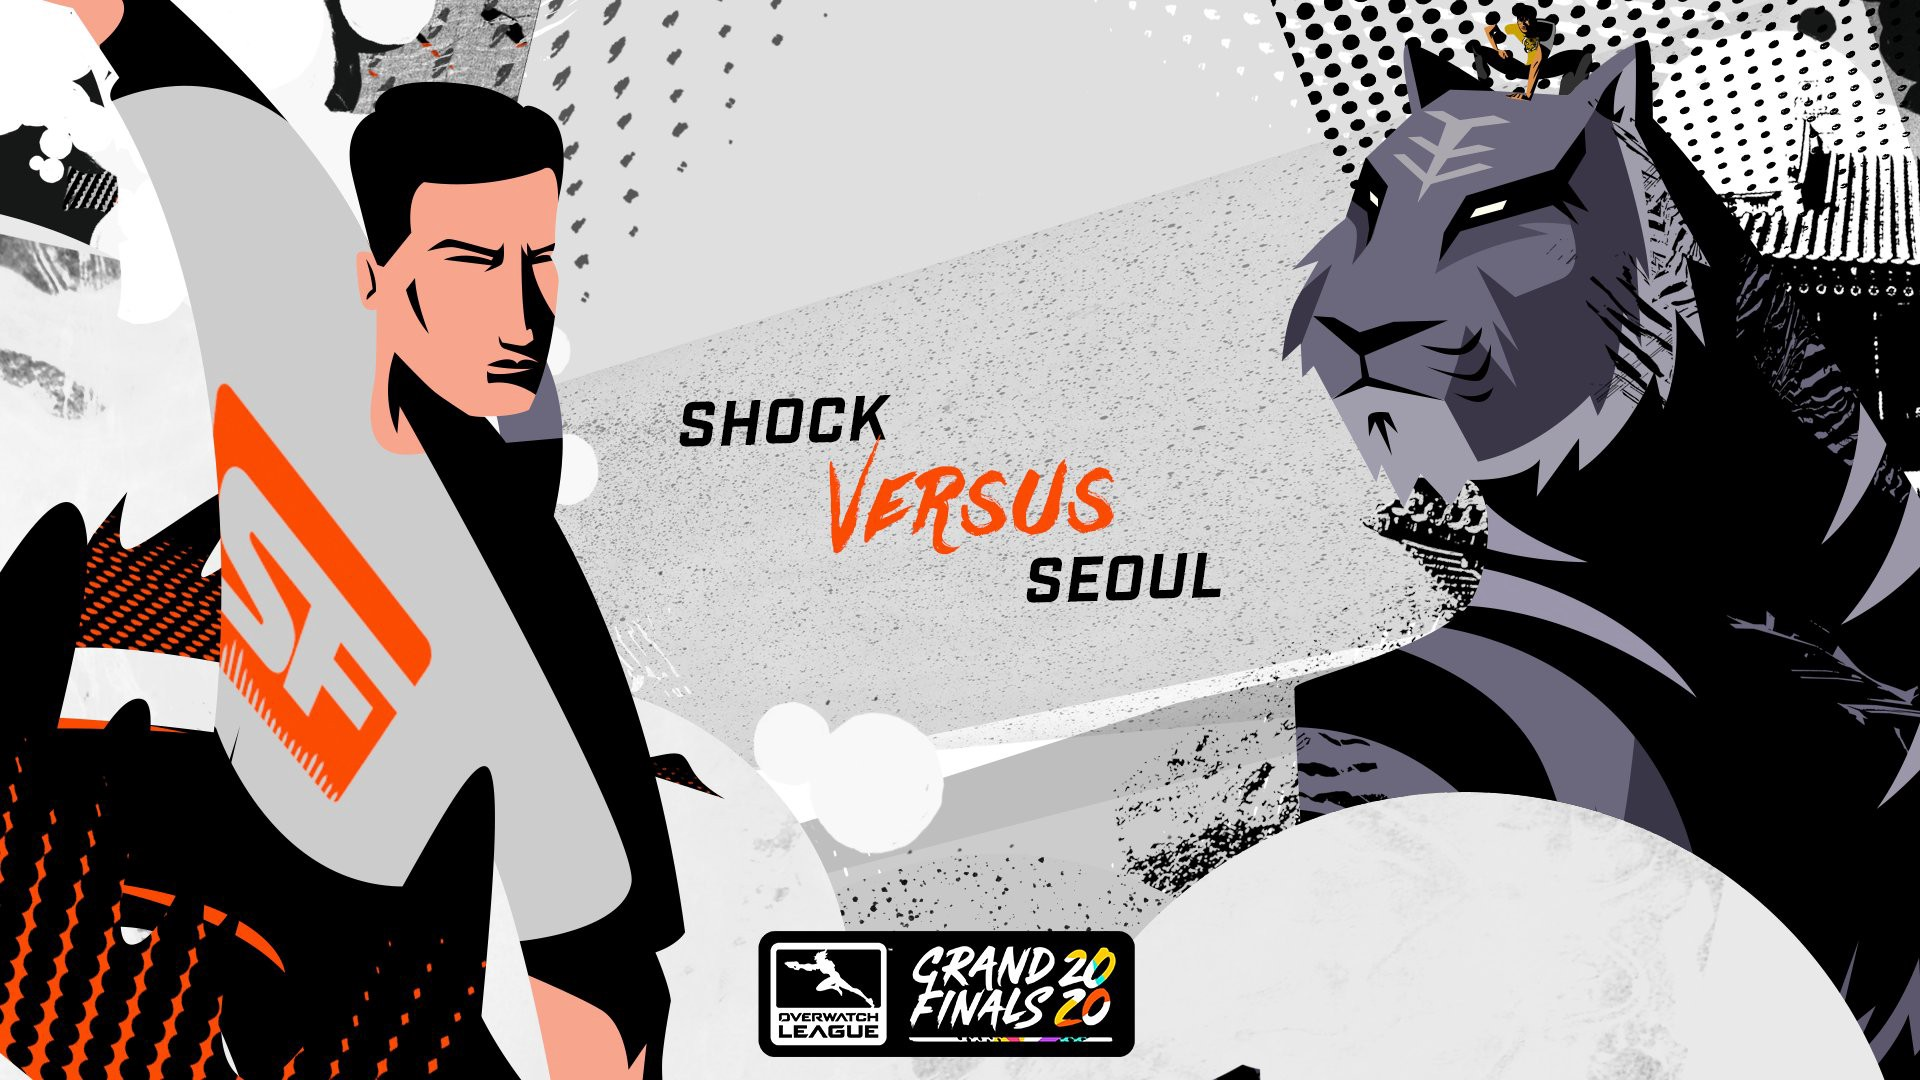 San Francisco Shock versus Seoul Dynasty to crown 2020 Overwatch League Champion.